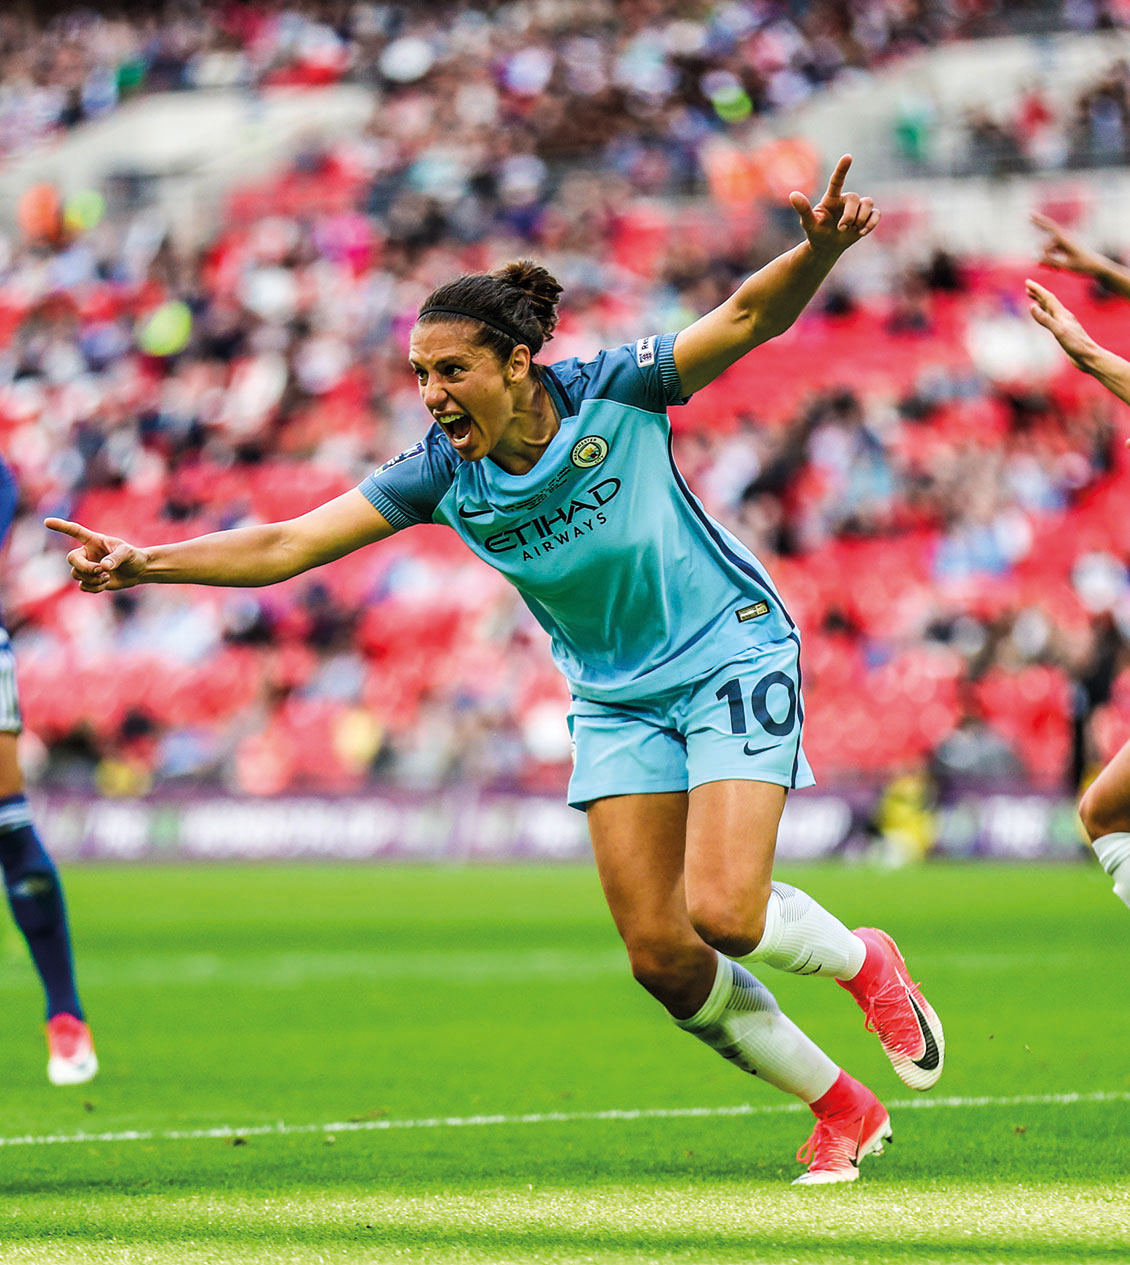 Manchester City's Carli Lloyd celebrates scoring in the FA Cup Final